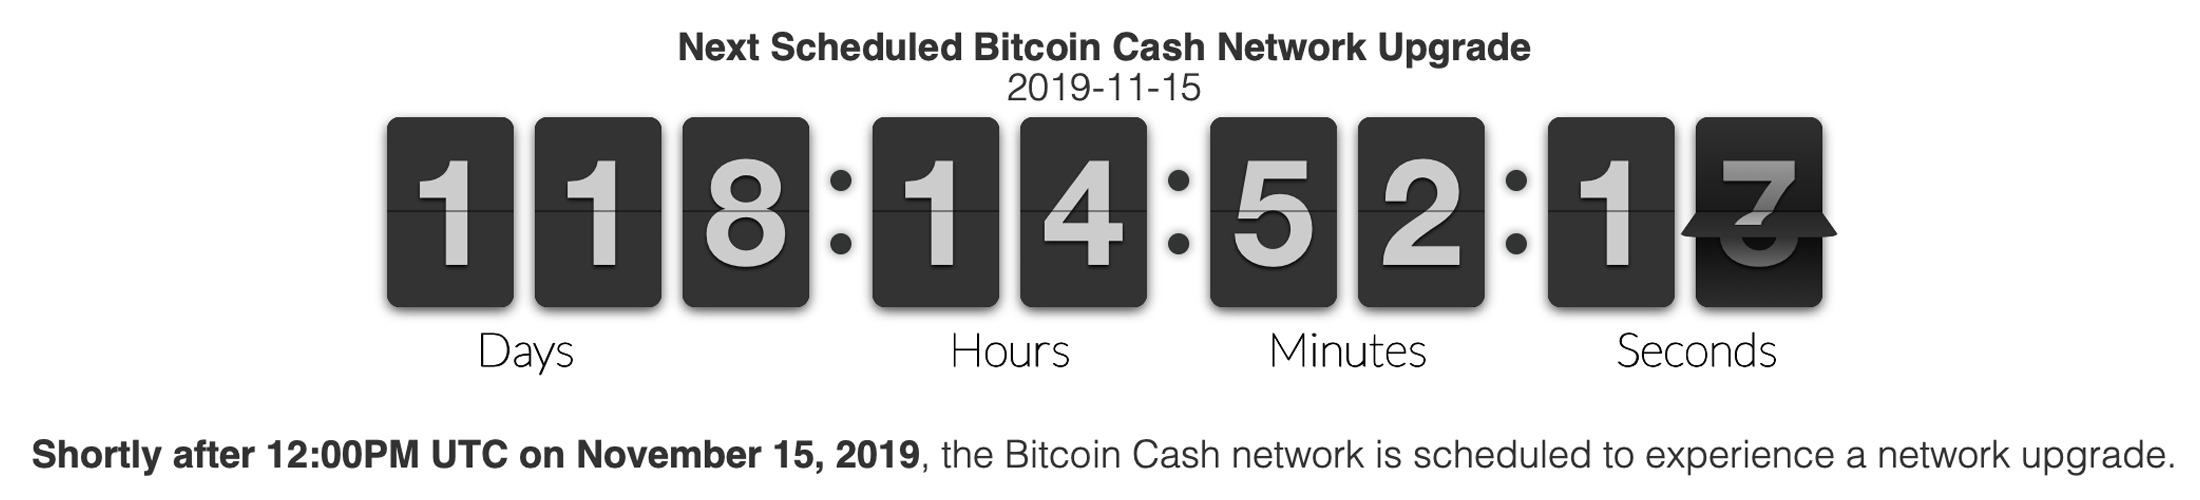 Bitcoin Cash Milestones: Delivered Code, Upgrades and Platform Development